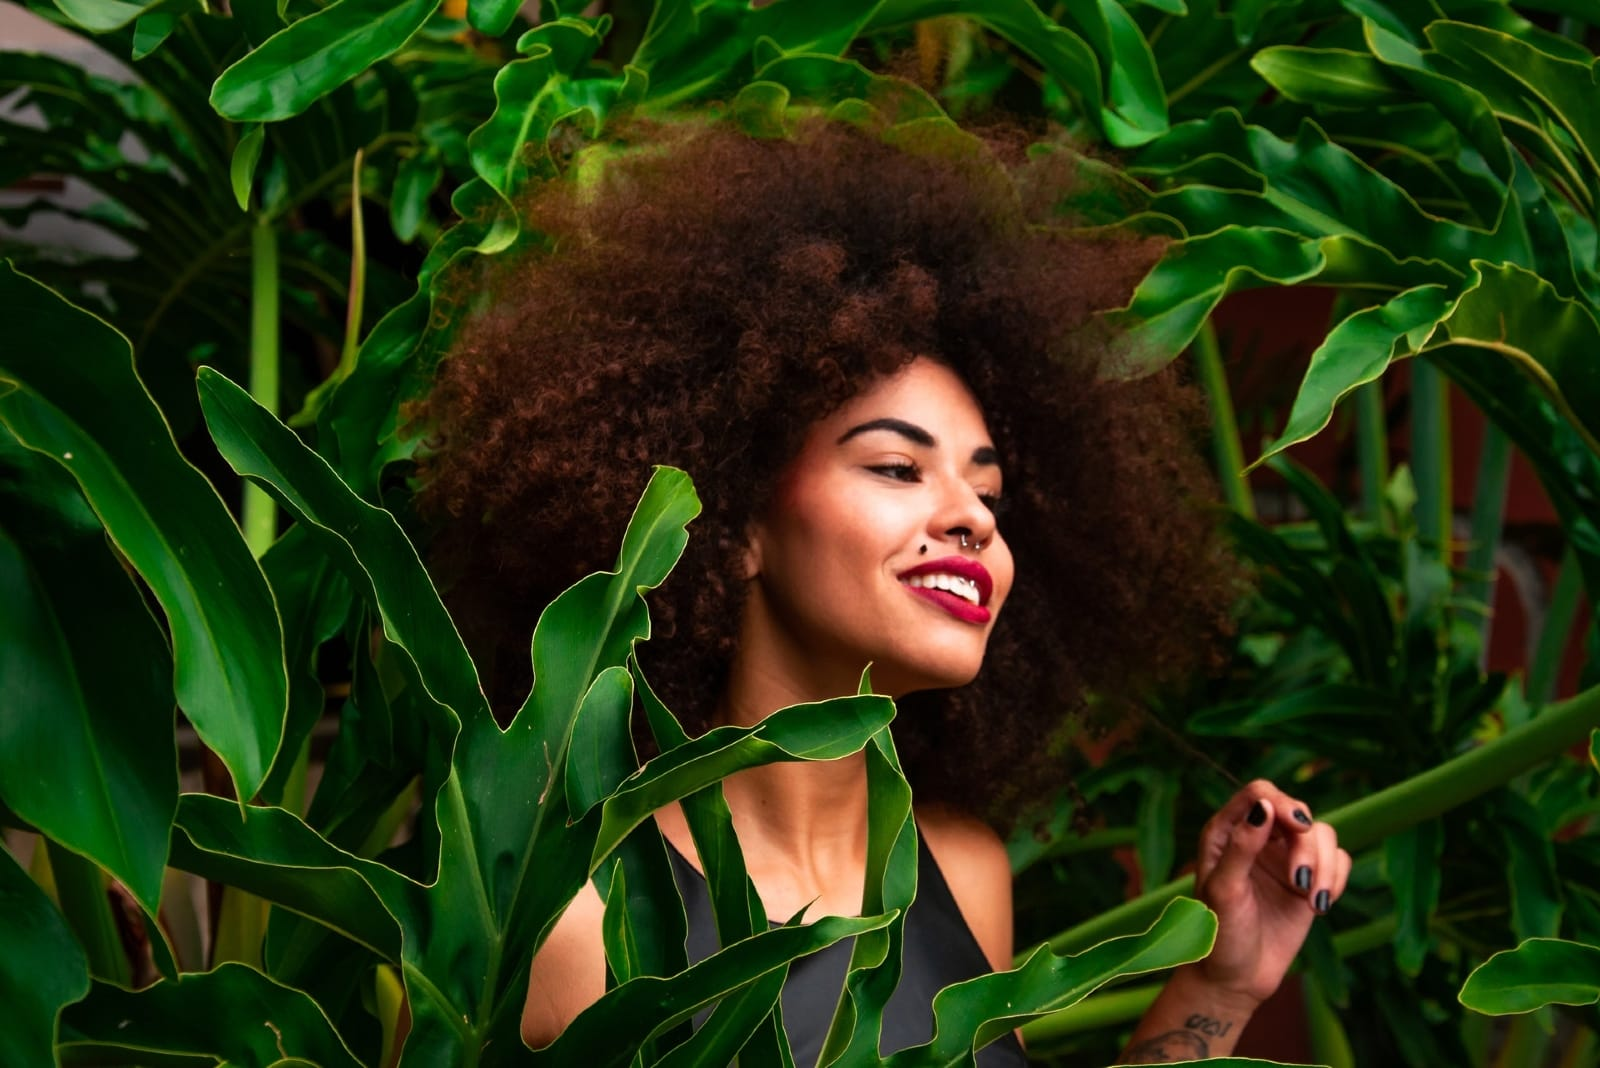 happy woman with curly hair standing near plant